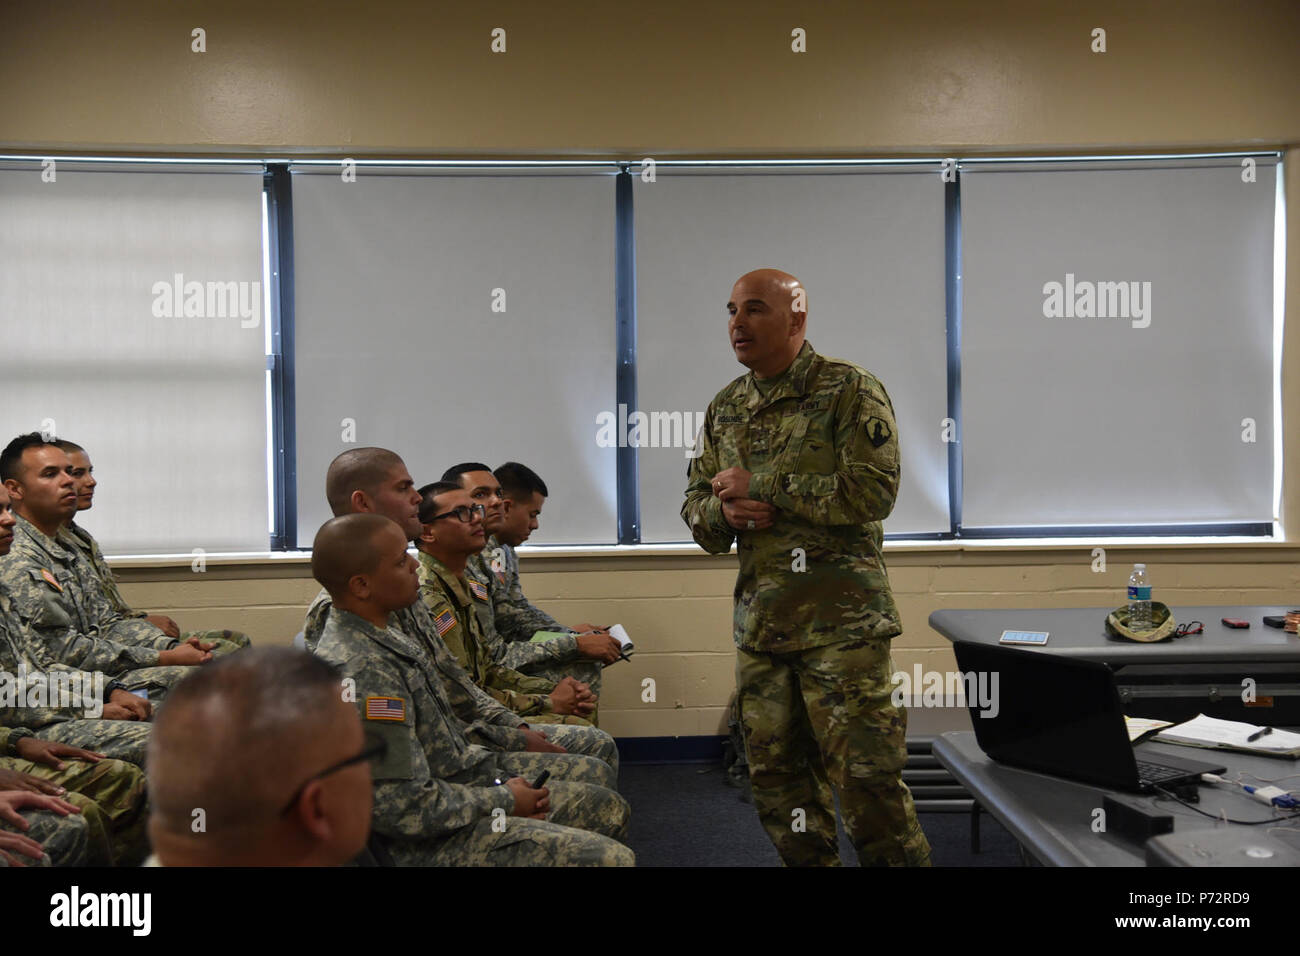 U.S. Army Reserve Soldiers assigned to the 246th Quartermaster Company (Mortuary Affairs) are in the midst of their pre-mobilization training and received a visit from both the 1st Mission Support Command commanding general and command sergeant major May 11-13. - Stock Image